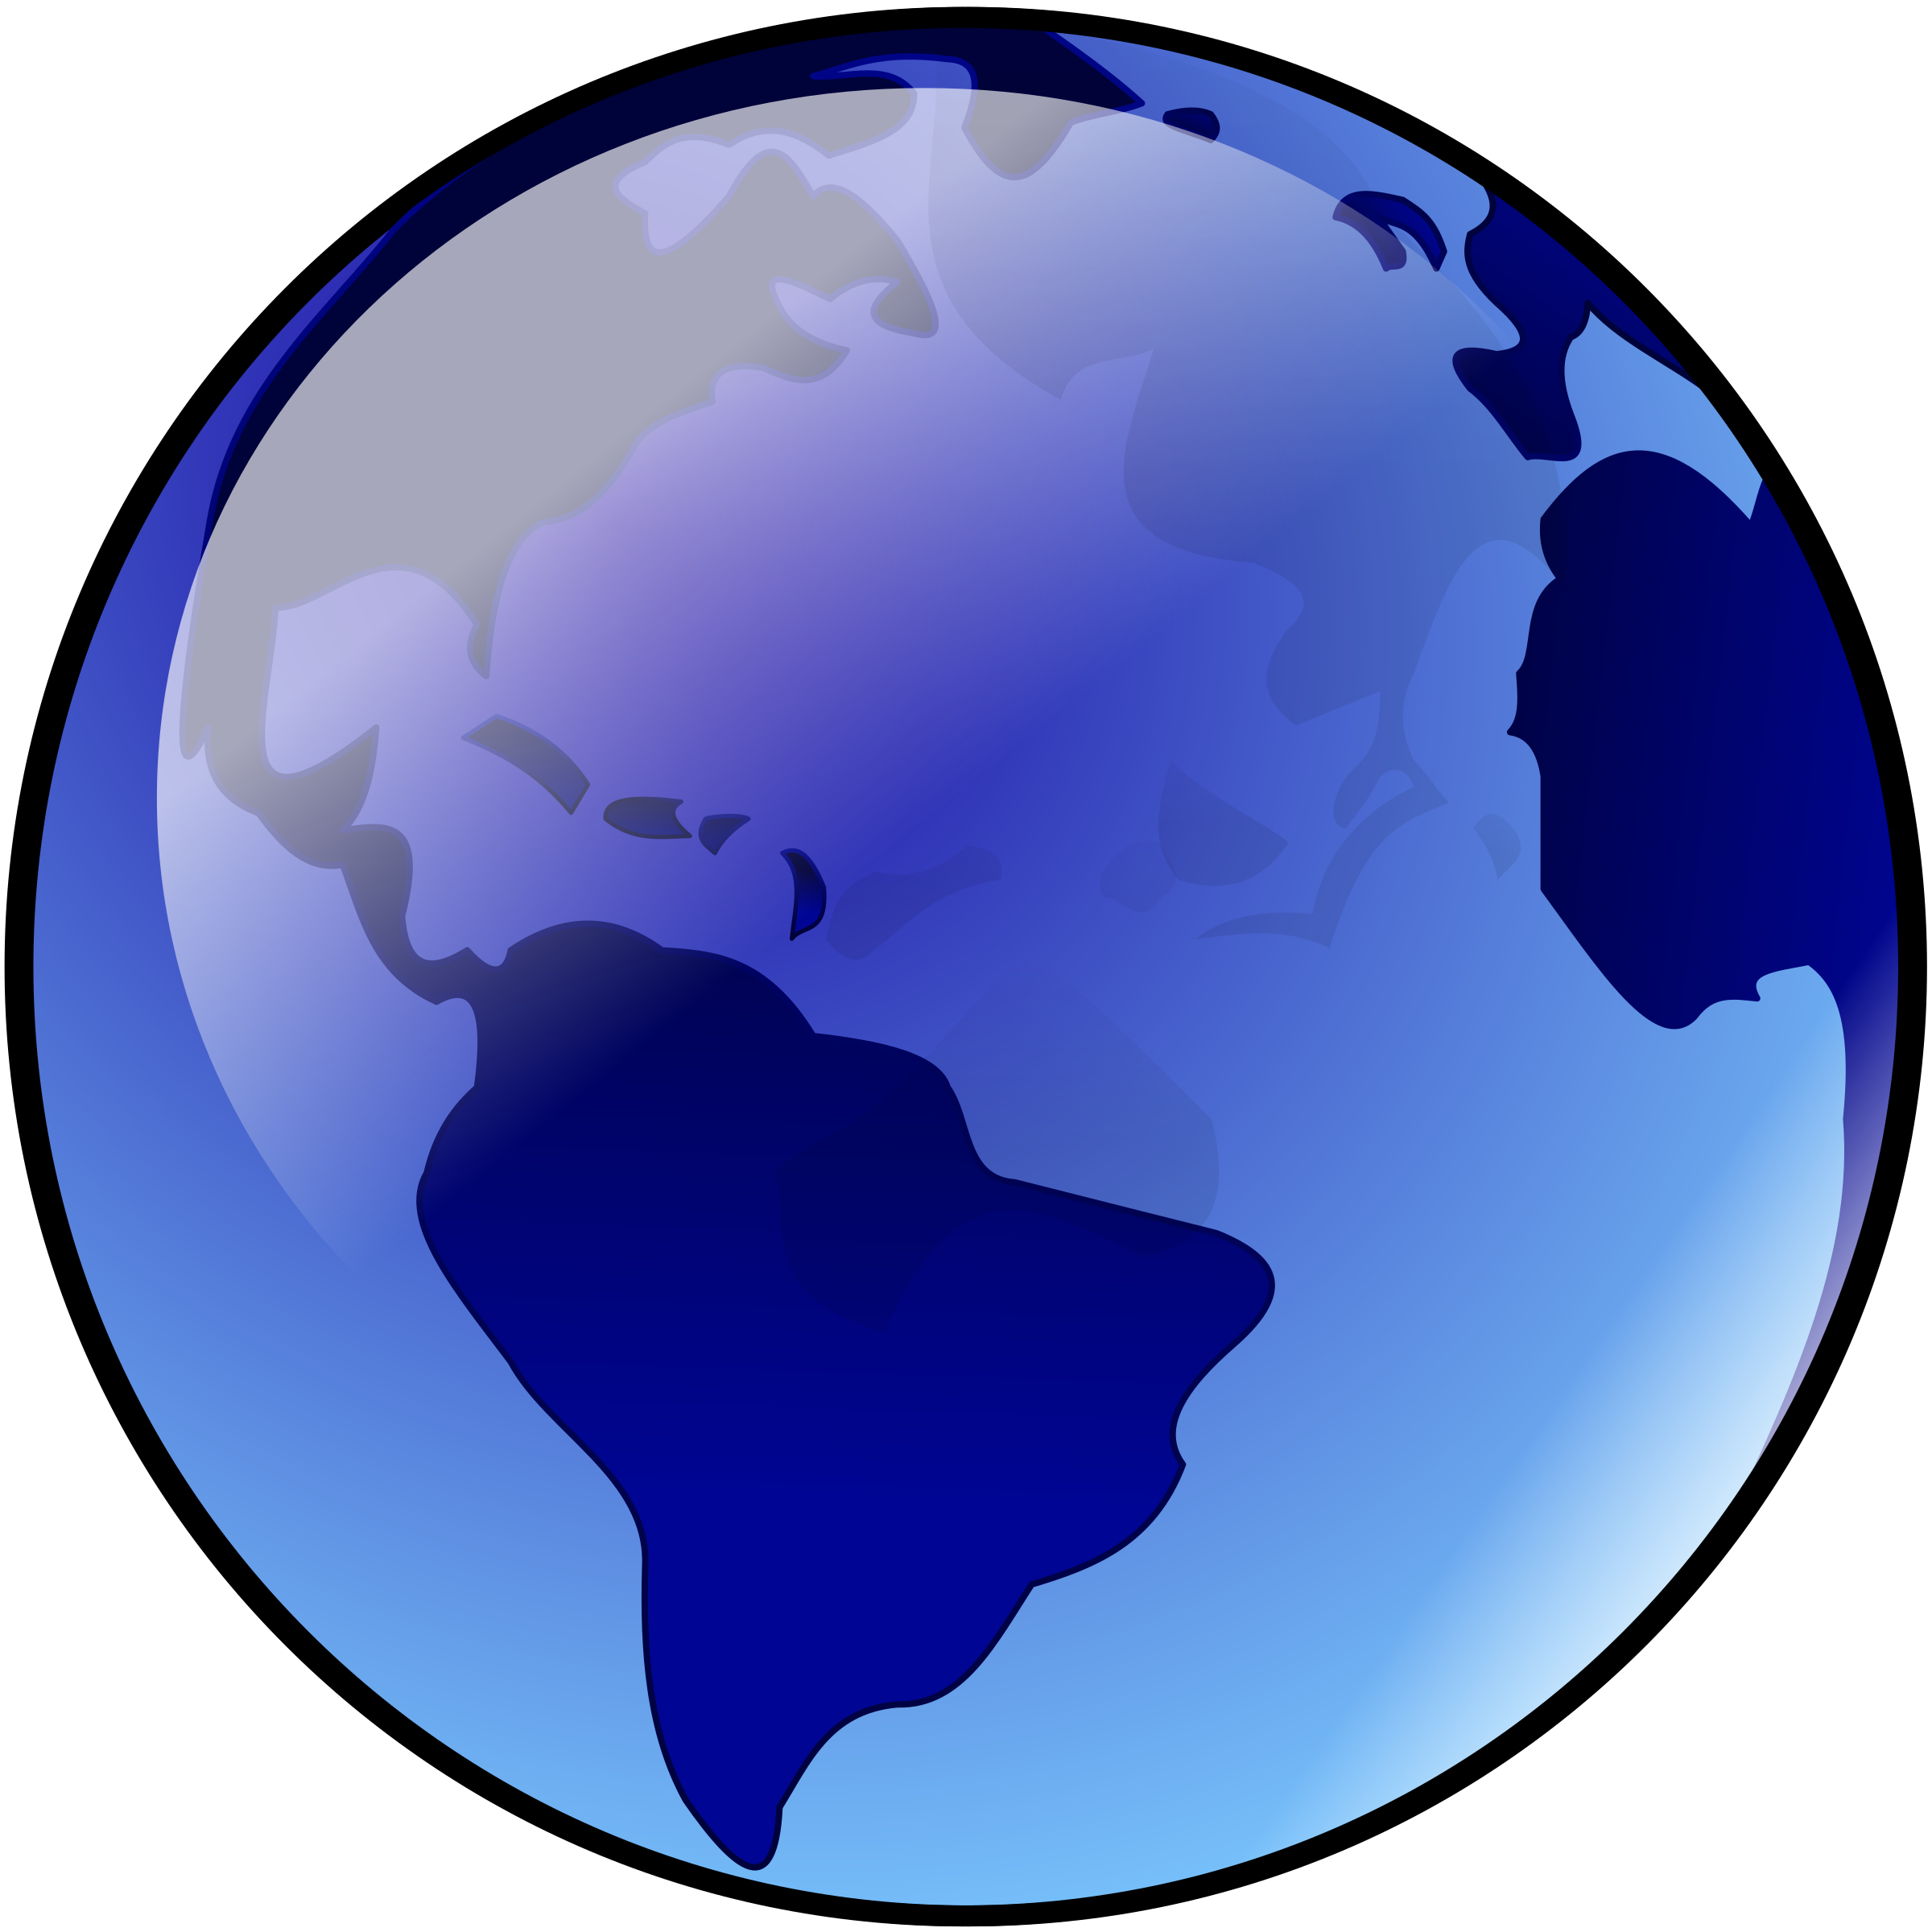 Clipart earth purple. Blue big image png